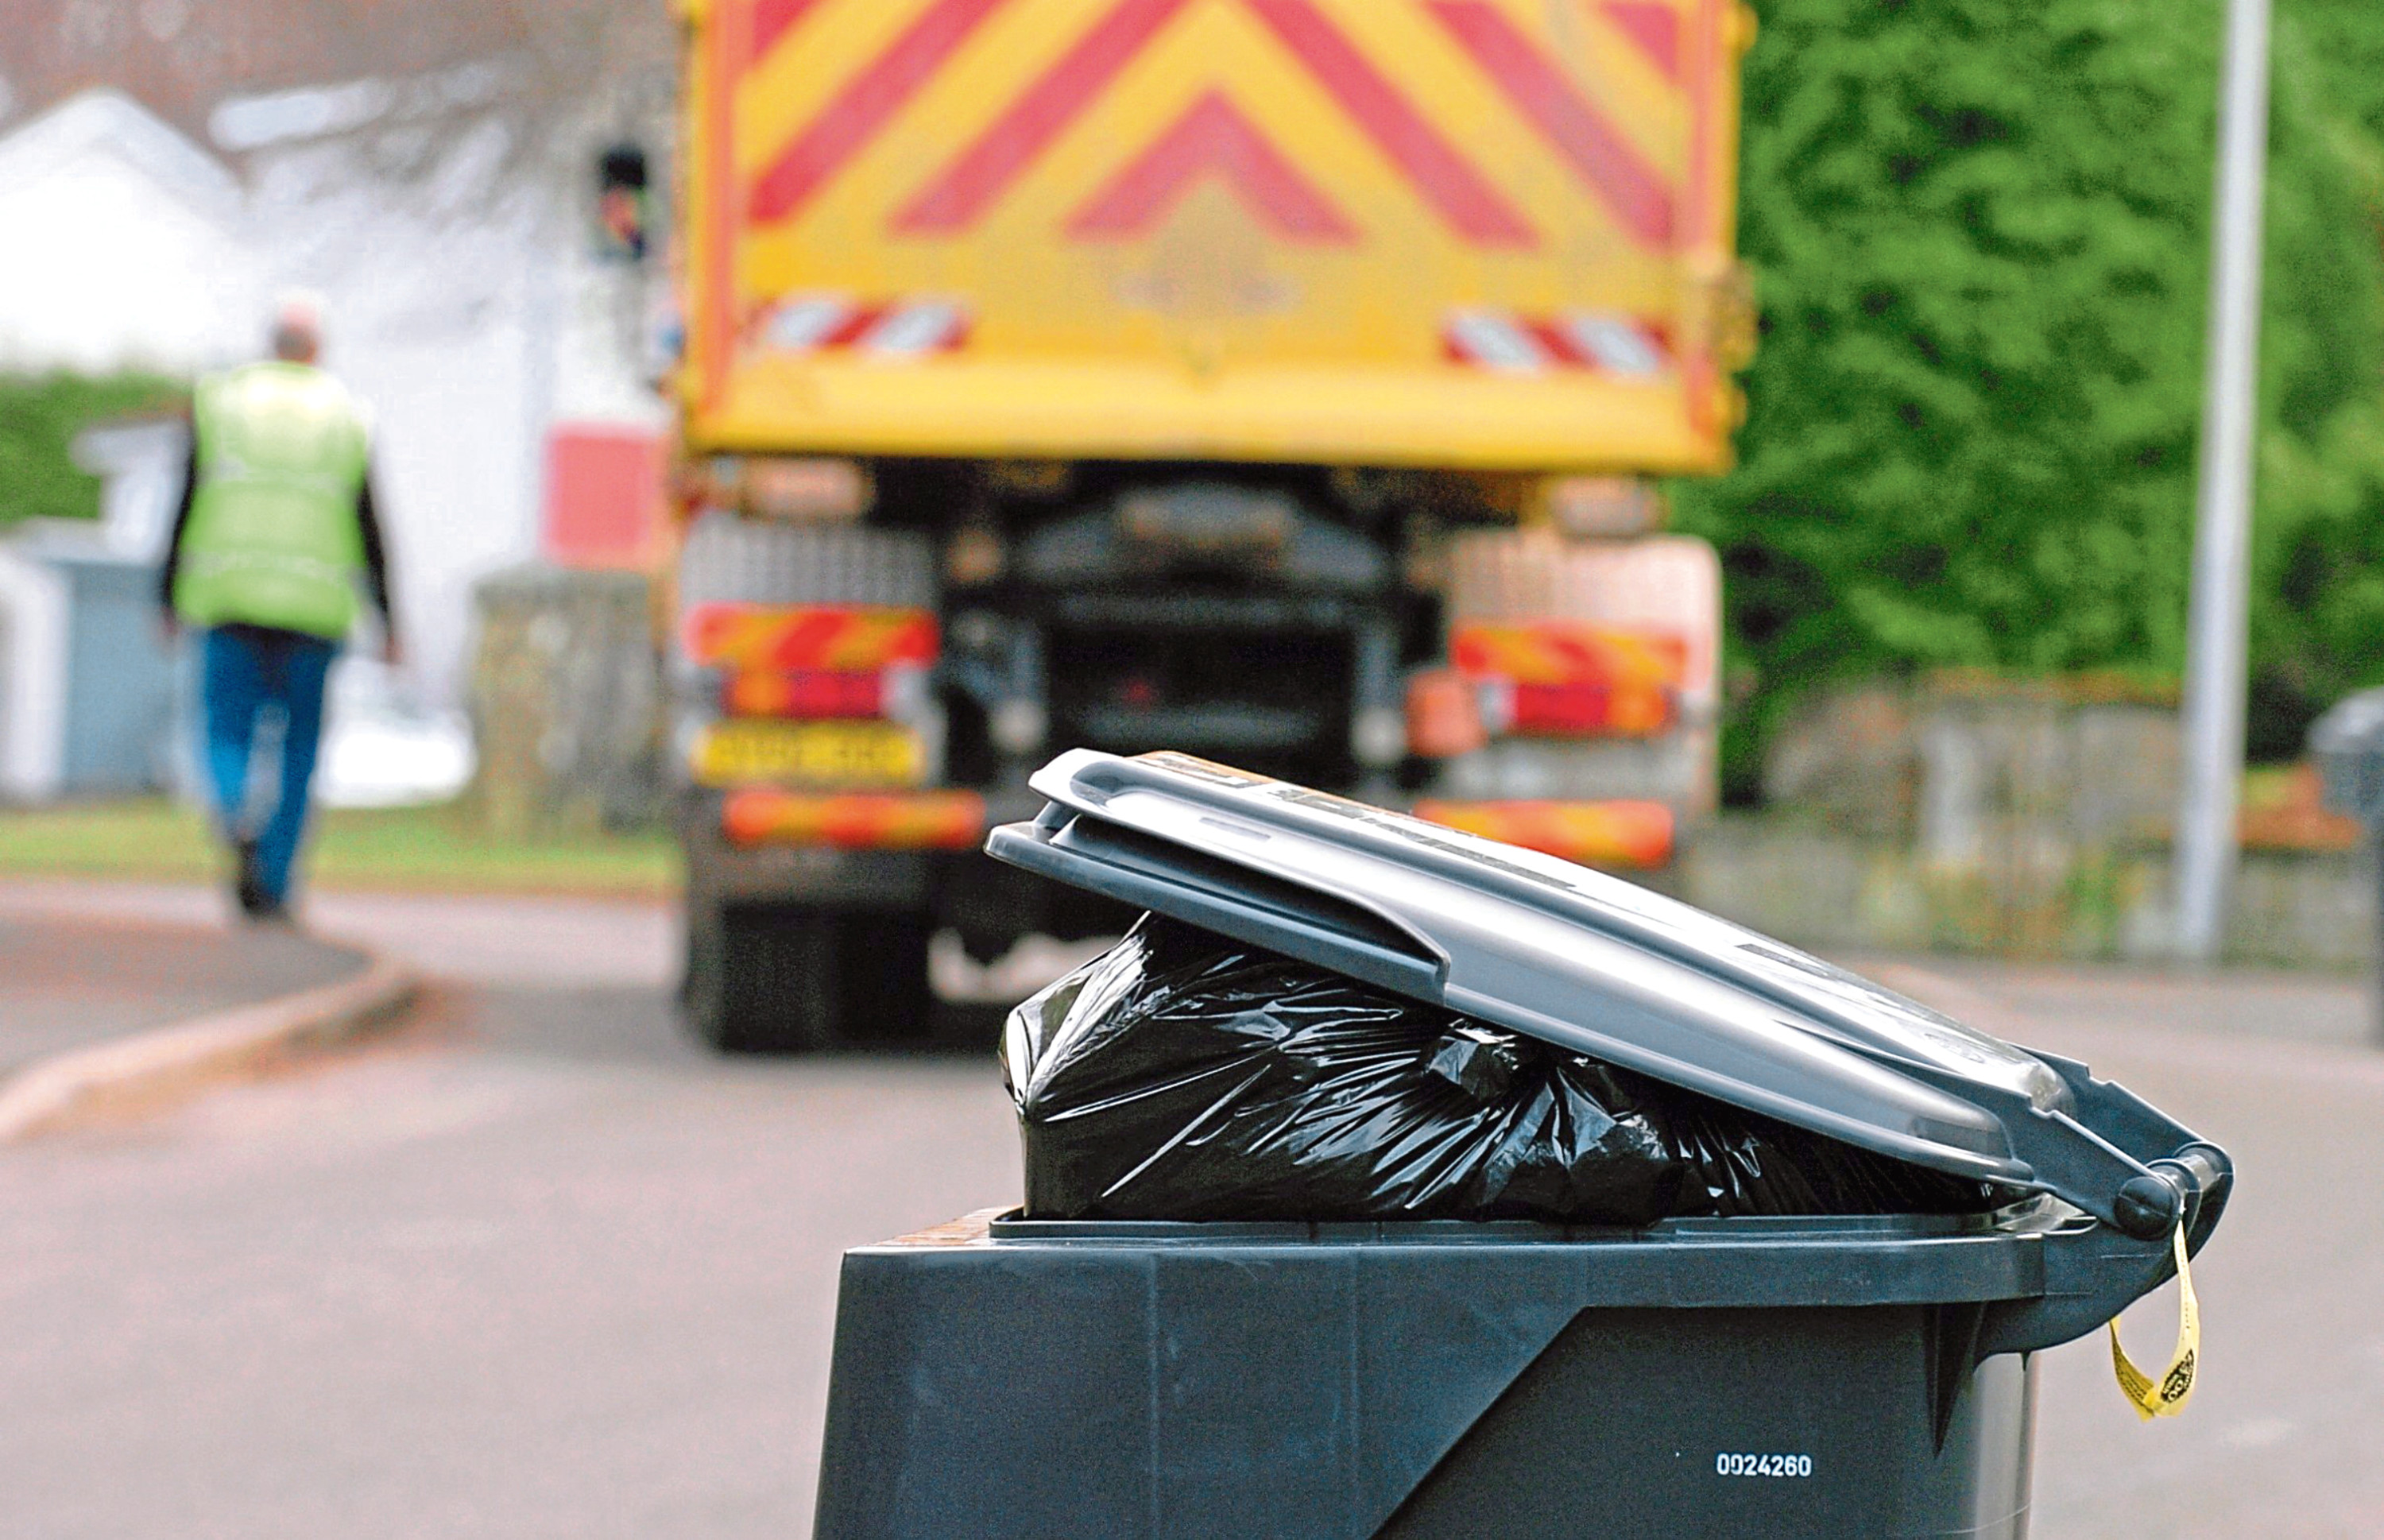 The council said that a new mixed recycling service meant there were more bins on the street.